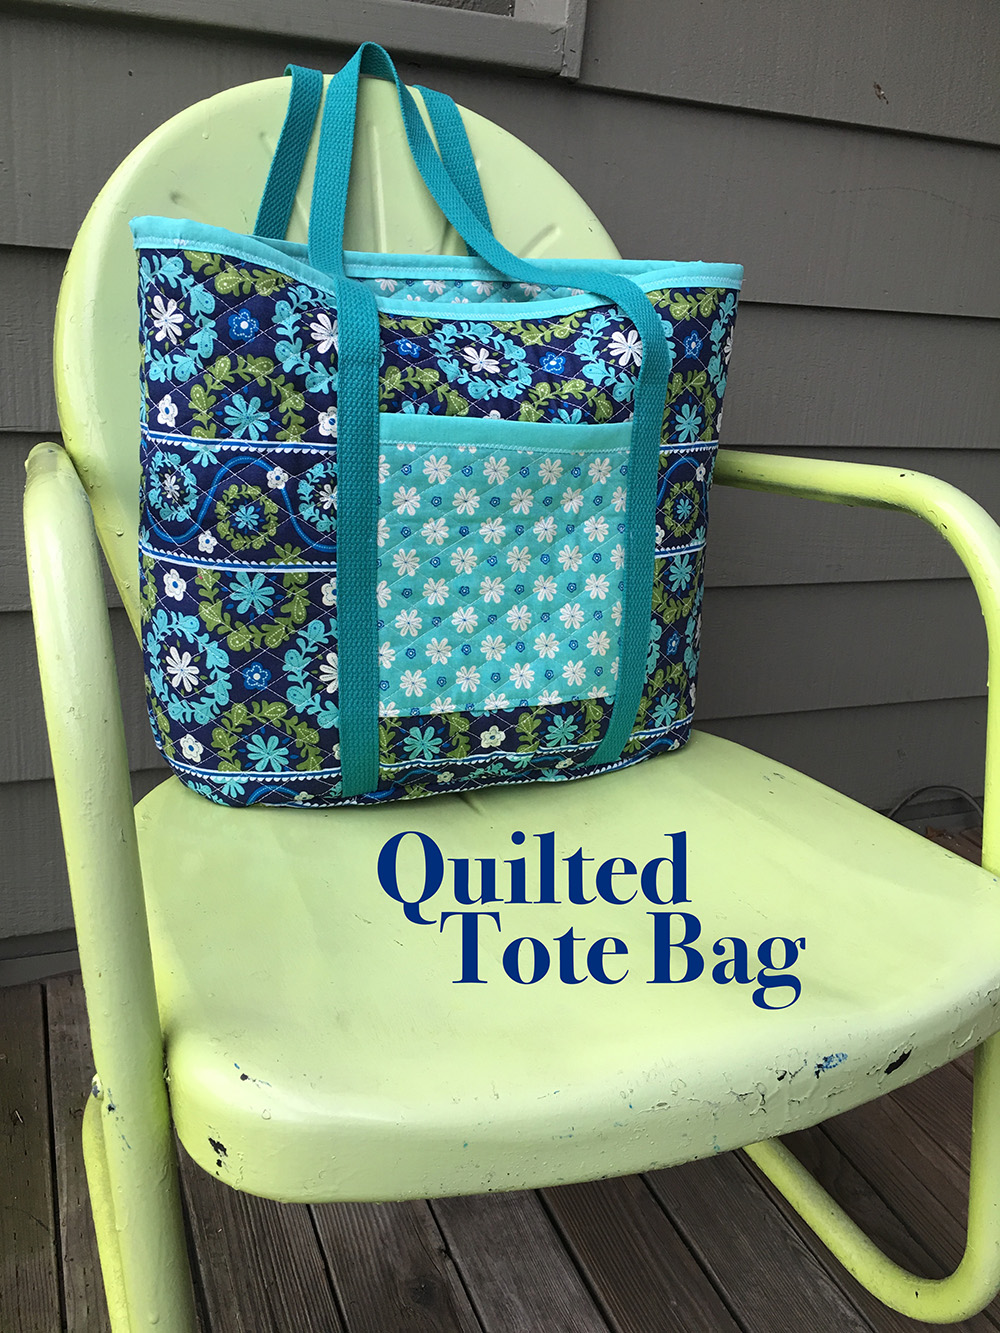 20 Free Patterns To Make A Quilted Tote Bag Guide Patterns